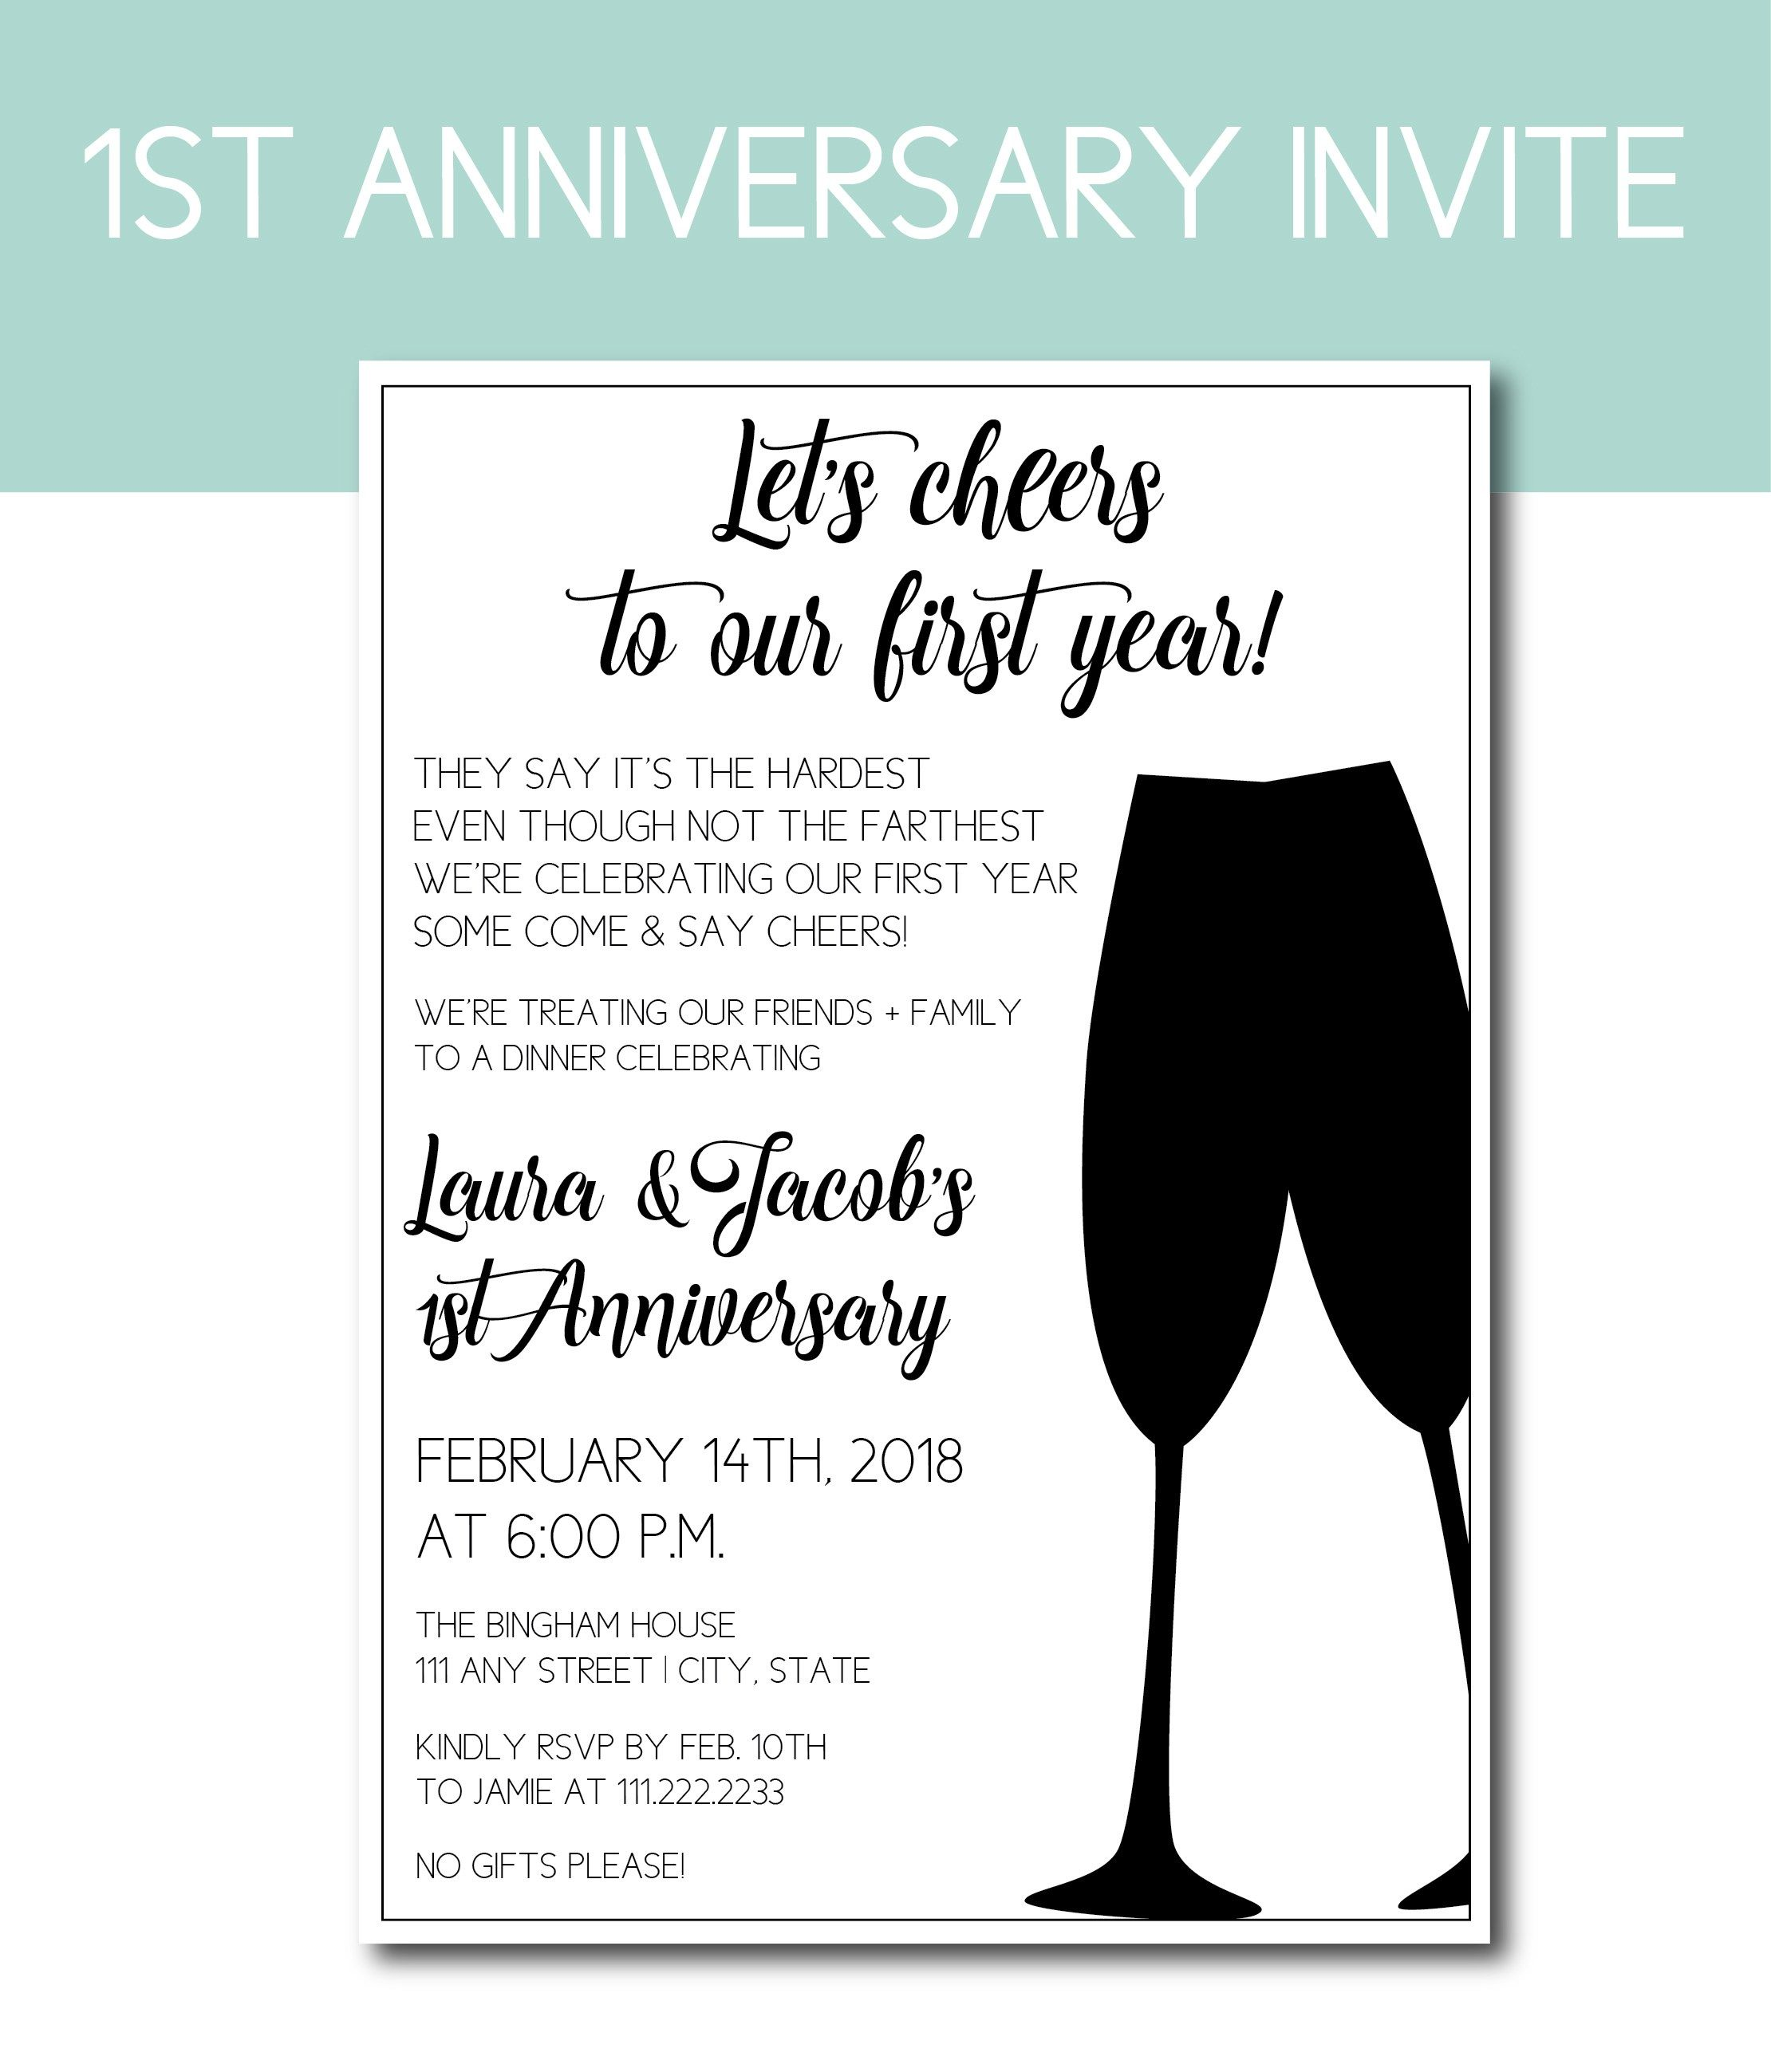 Anniversary Ideas For Milestones Cards And Invites What To Give For Each Year Aesthetic Journeys Anniversary Party Invitations Wedding Anniversary Invitations Wedding Anniversary Party